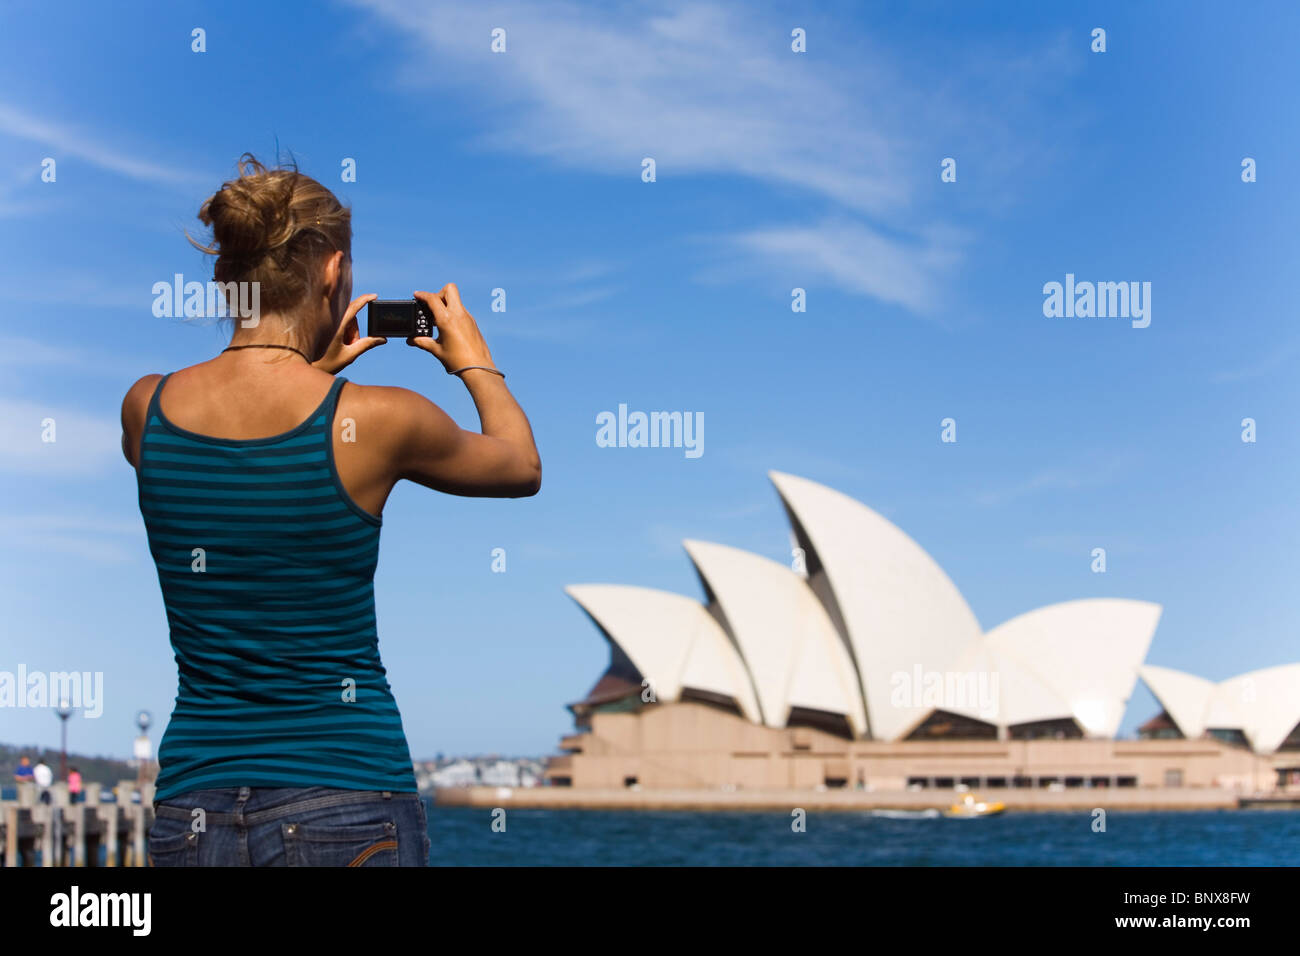 A woman photographs the Opera House in Sydney, New South Wales, AUSTRALIA. Stock Photo